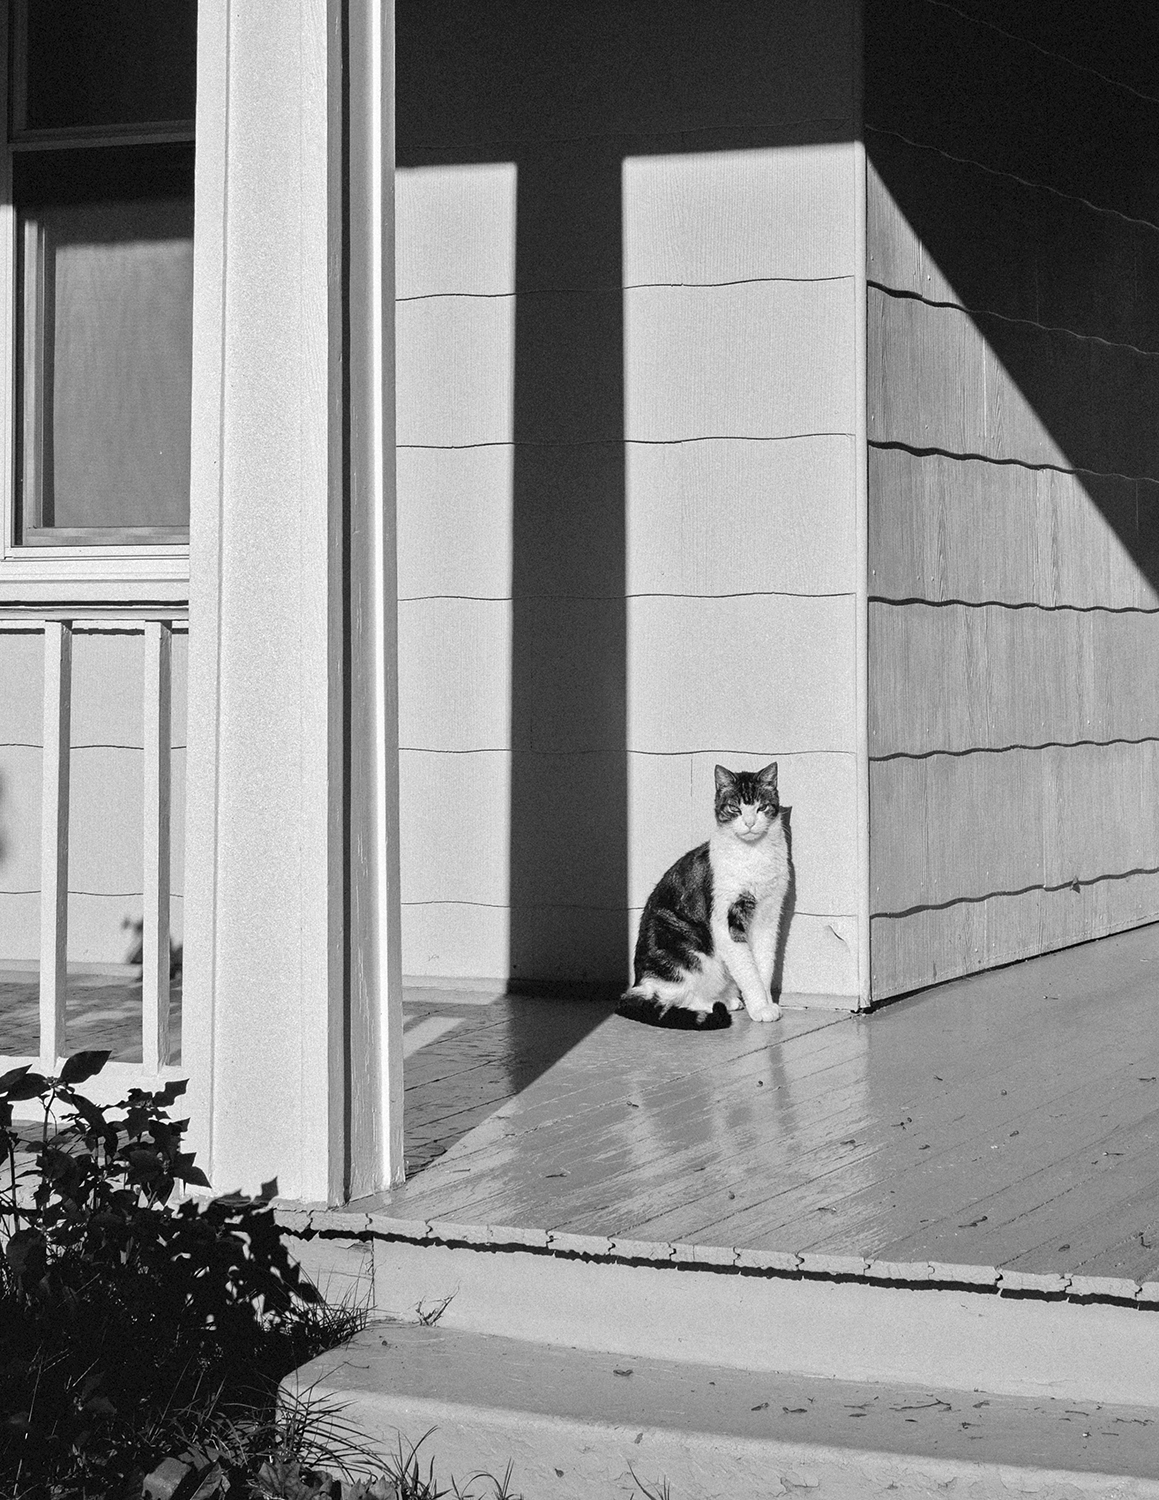 Cat_SunshinePorch_0005_crop.jpg